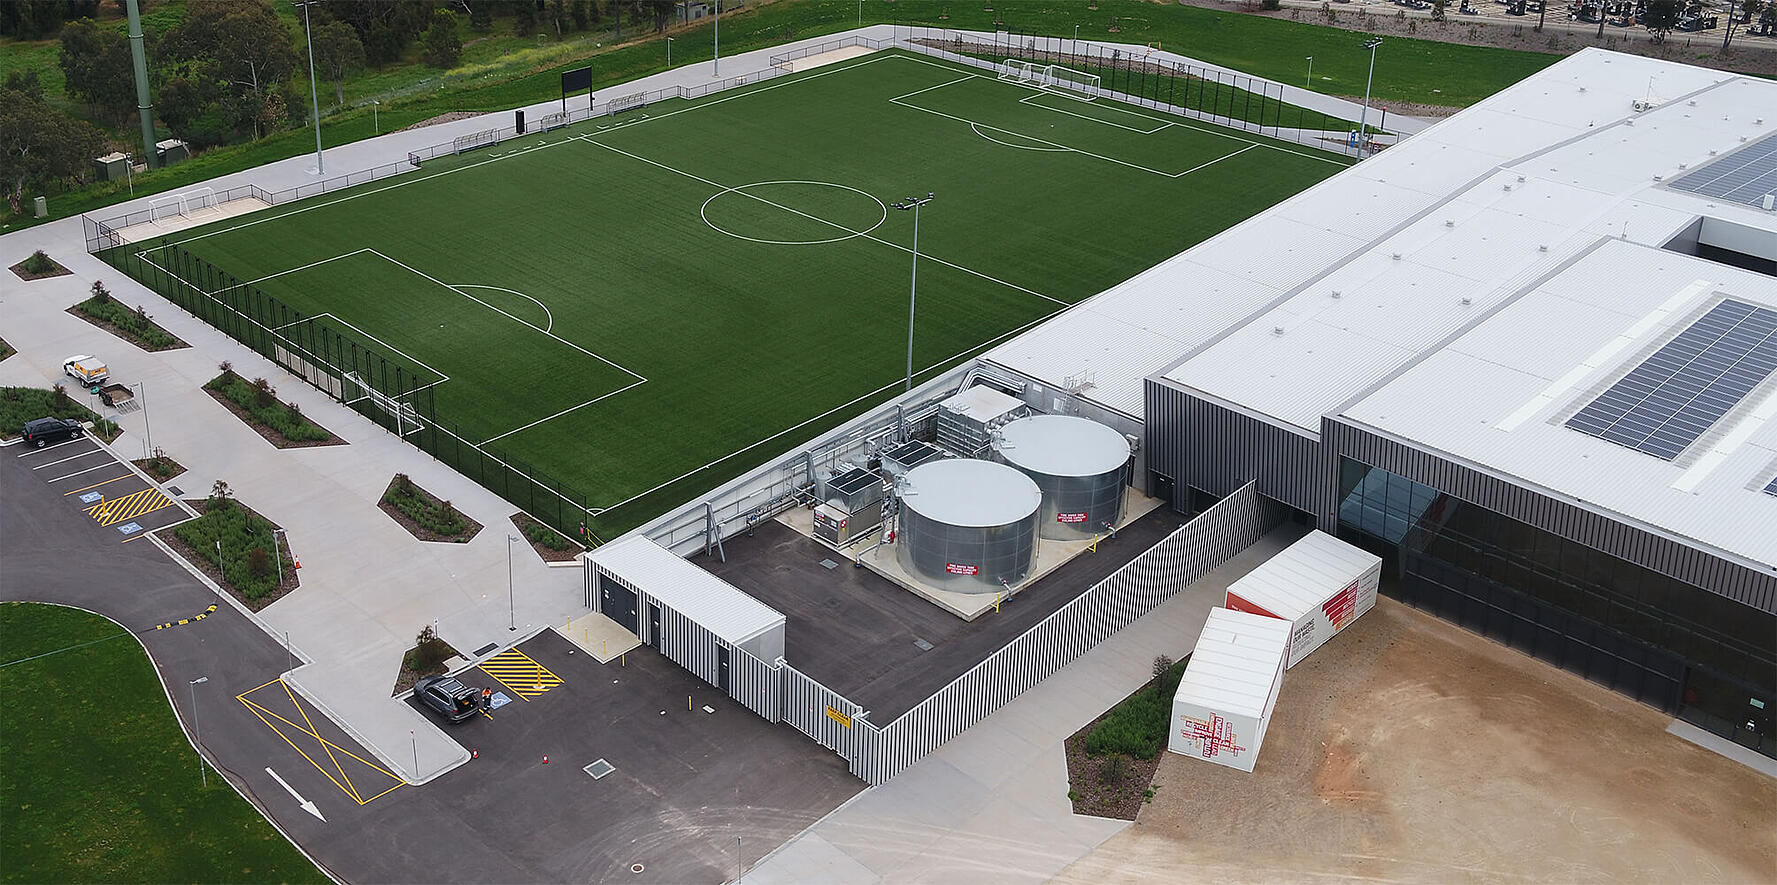 Aerial view of the La Trobe University synthetic turf soccer Field of Play